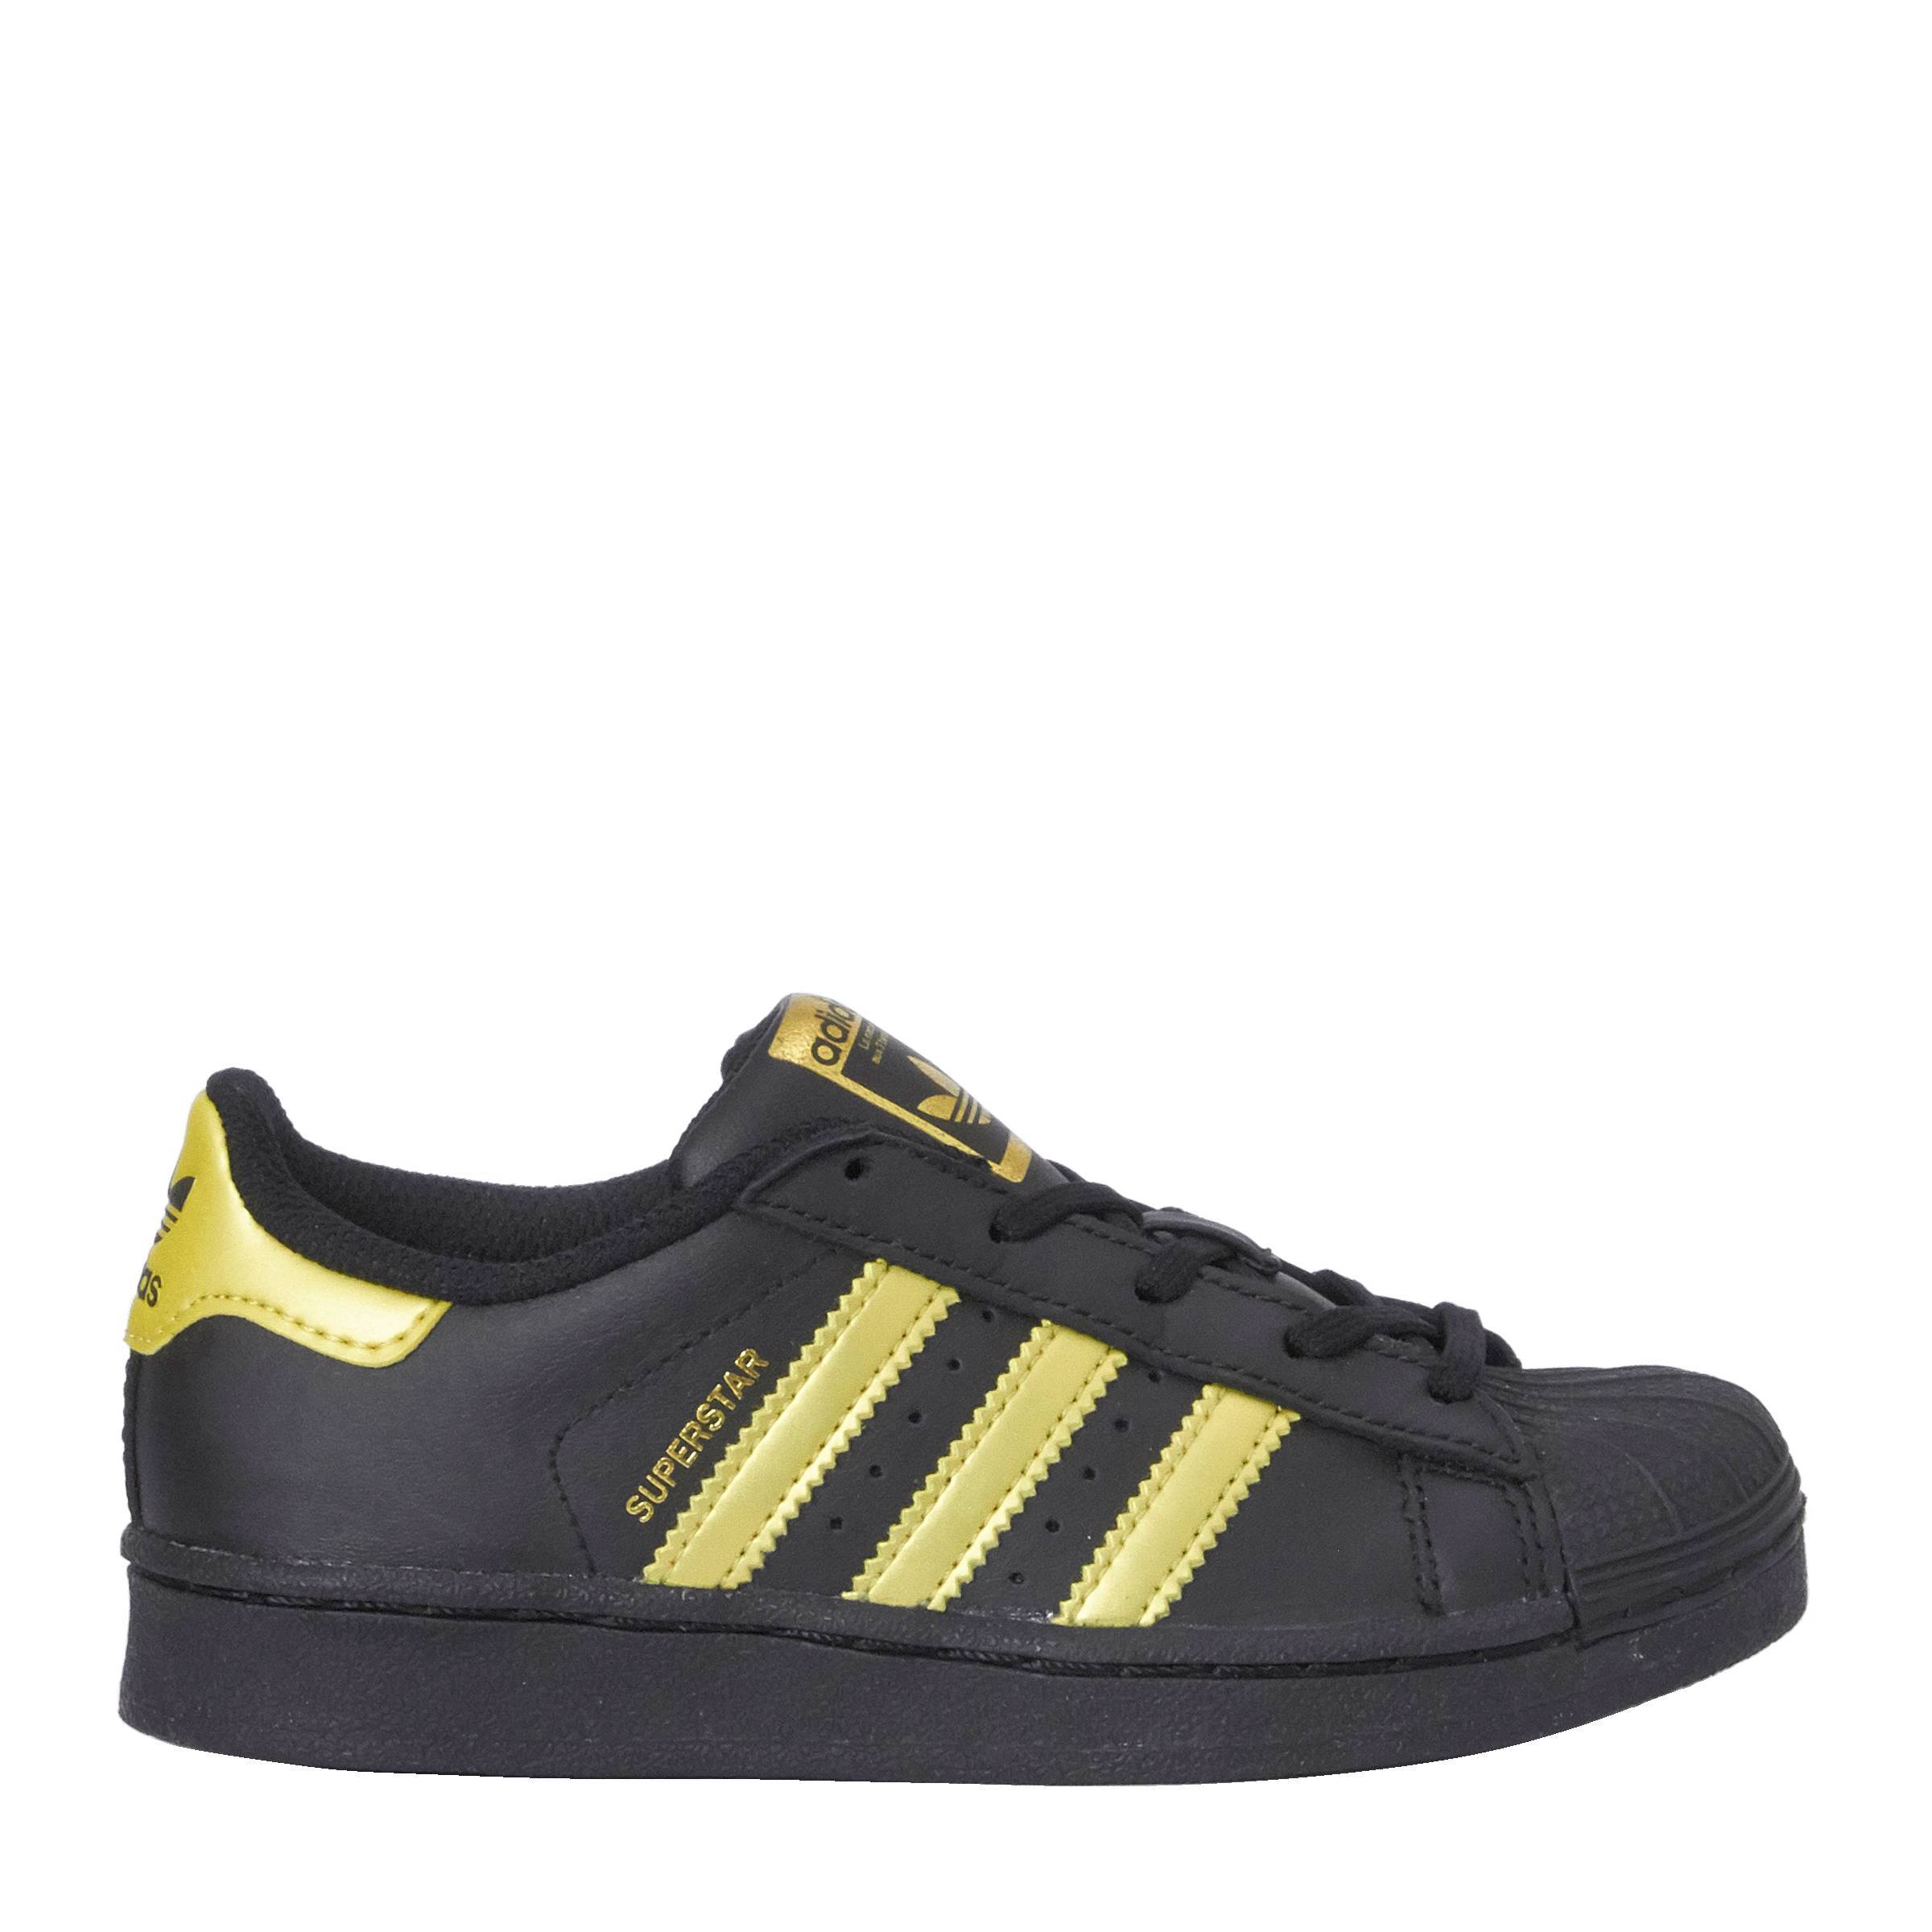 92e88b04163 adidas originals Superstar C sneakers | wehkamp